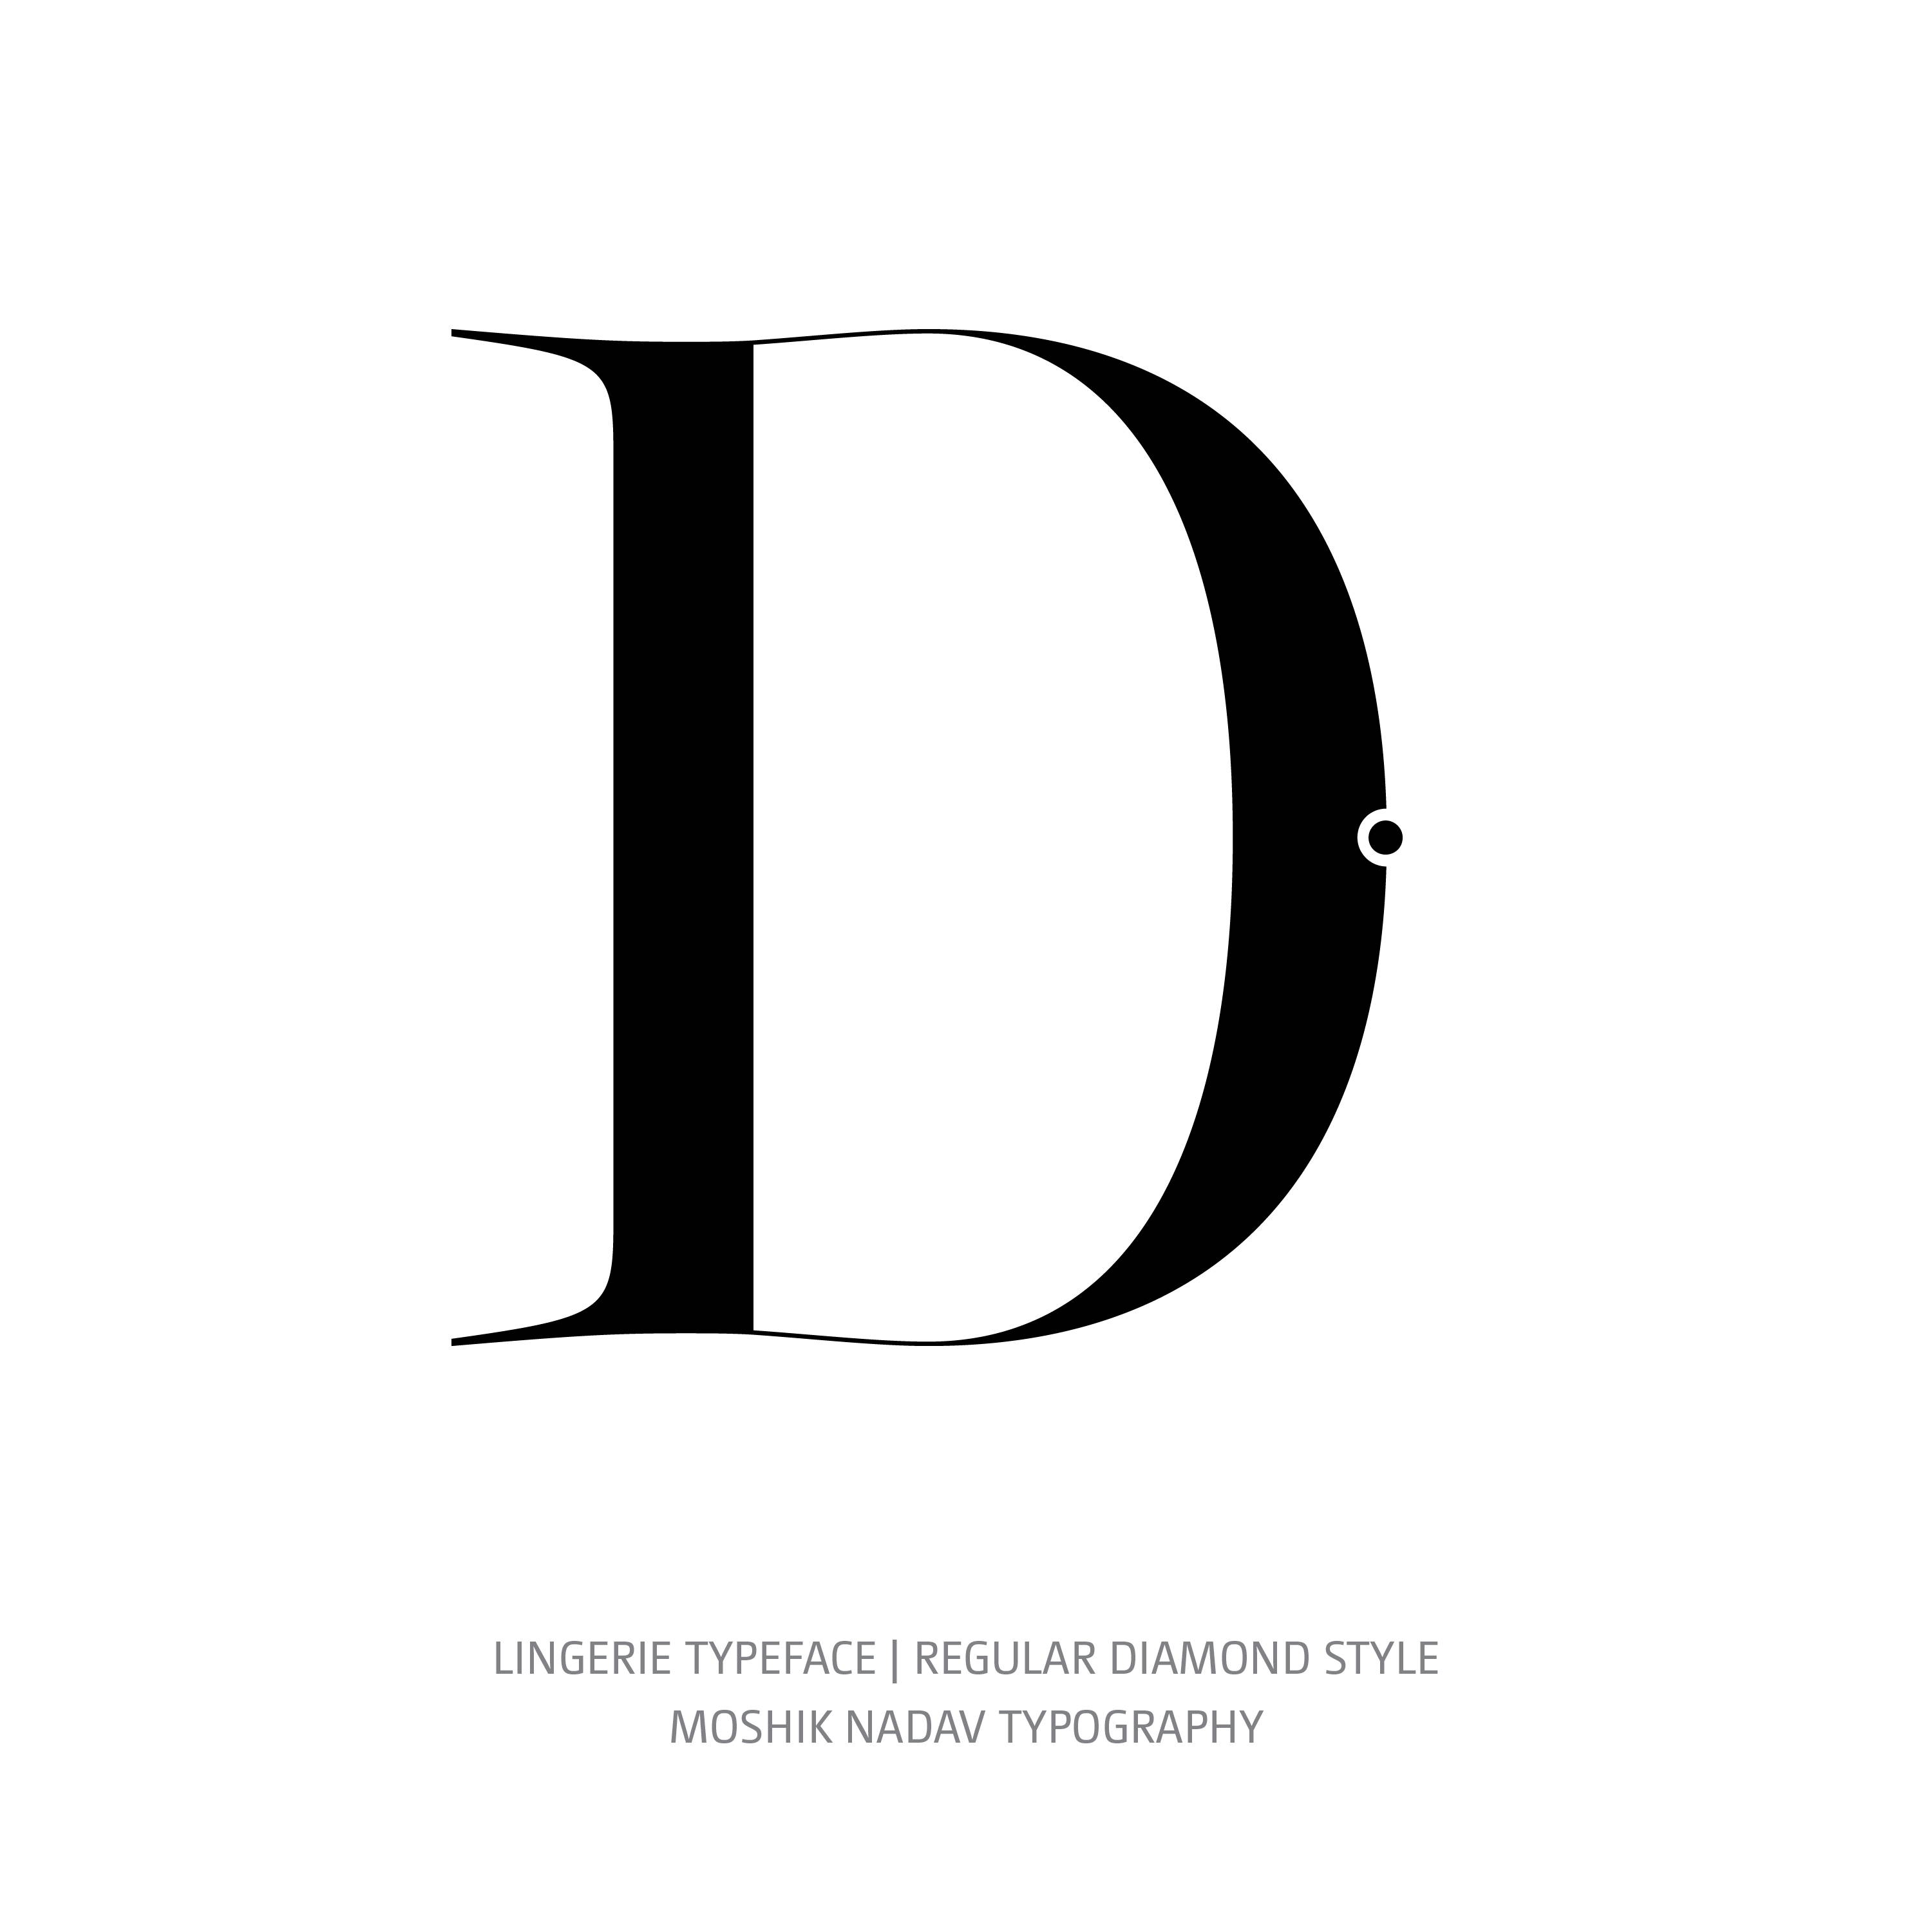 Lingerie Typeface Regular Diamond D